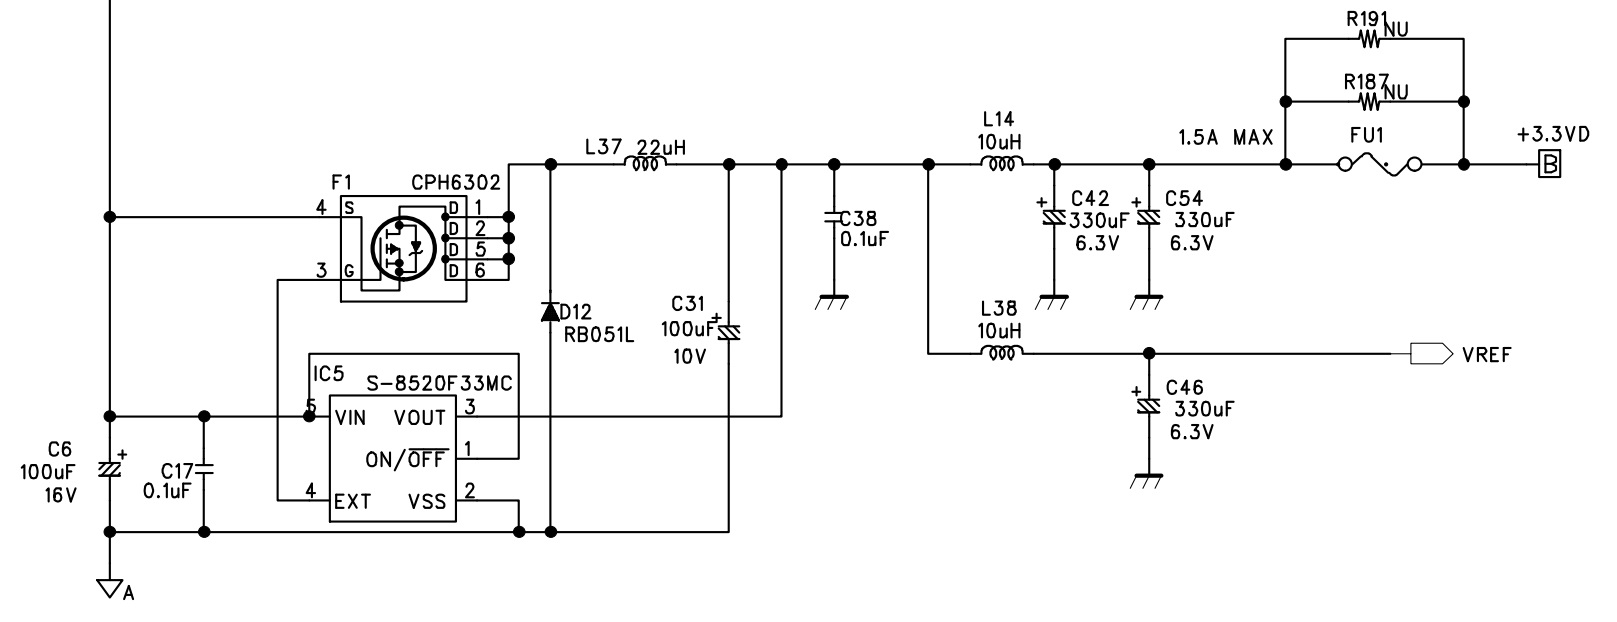 Schematic of Korg Microkorg power supply 3,3V section